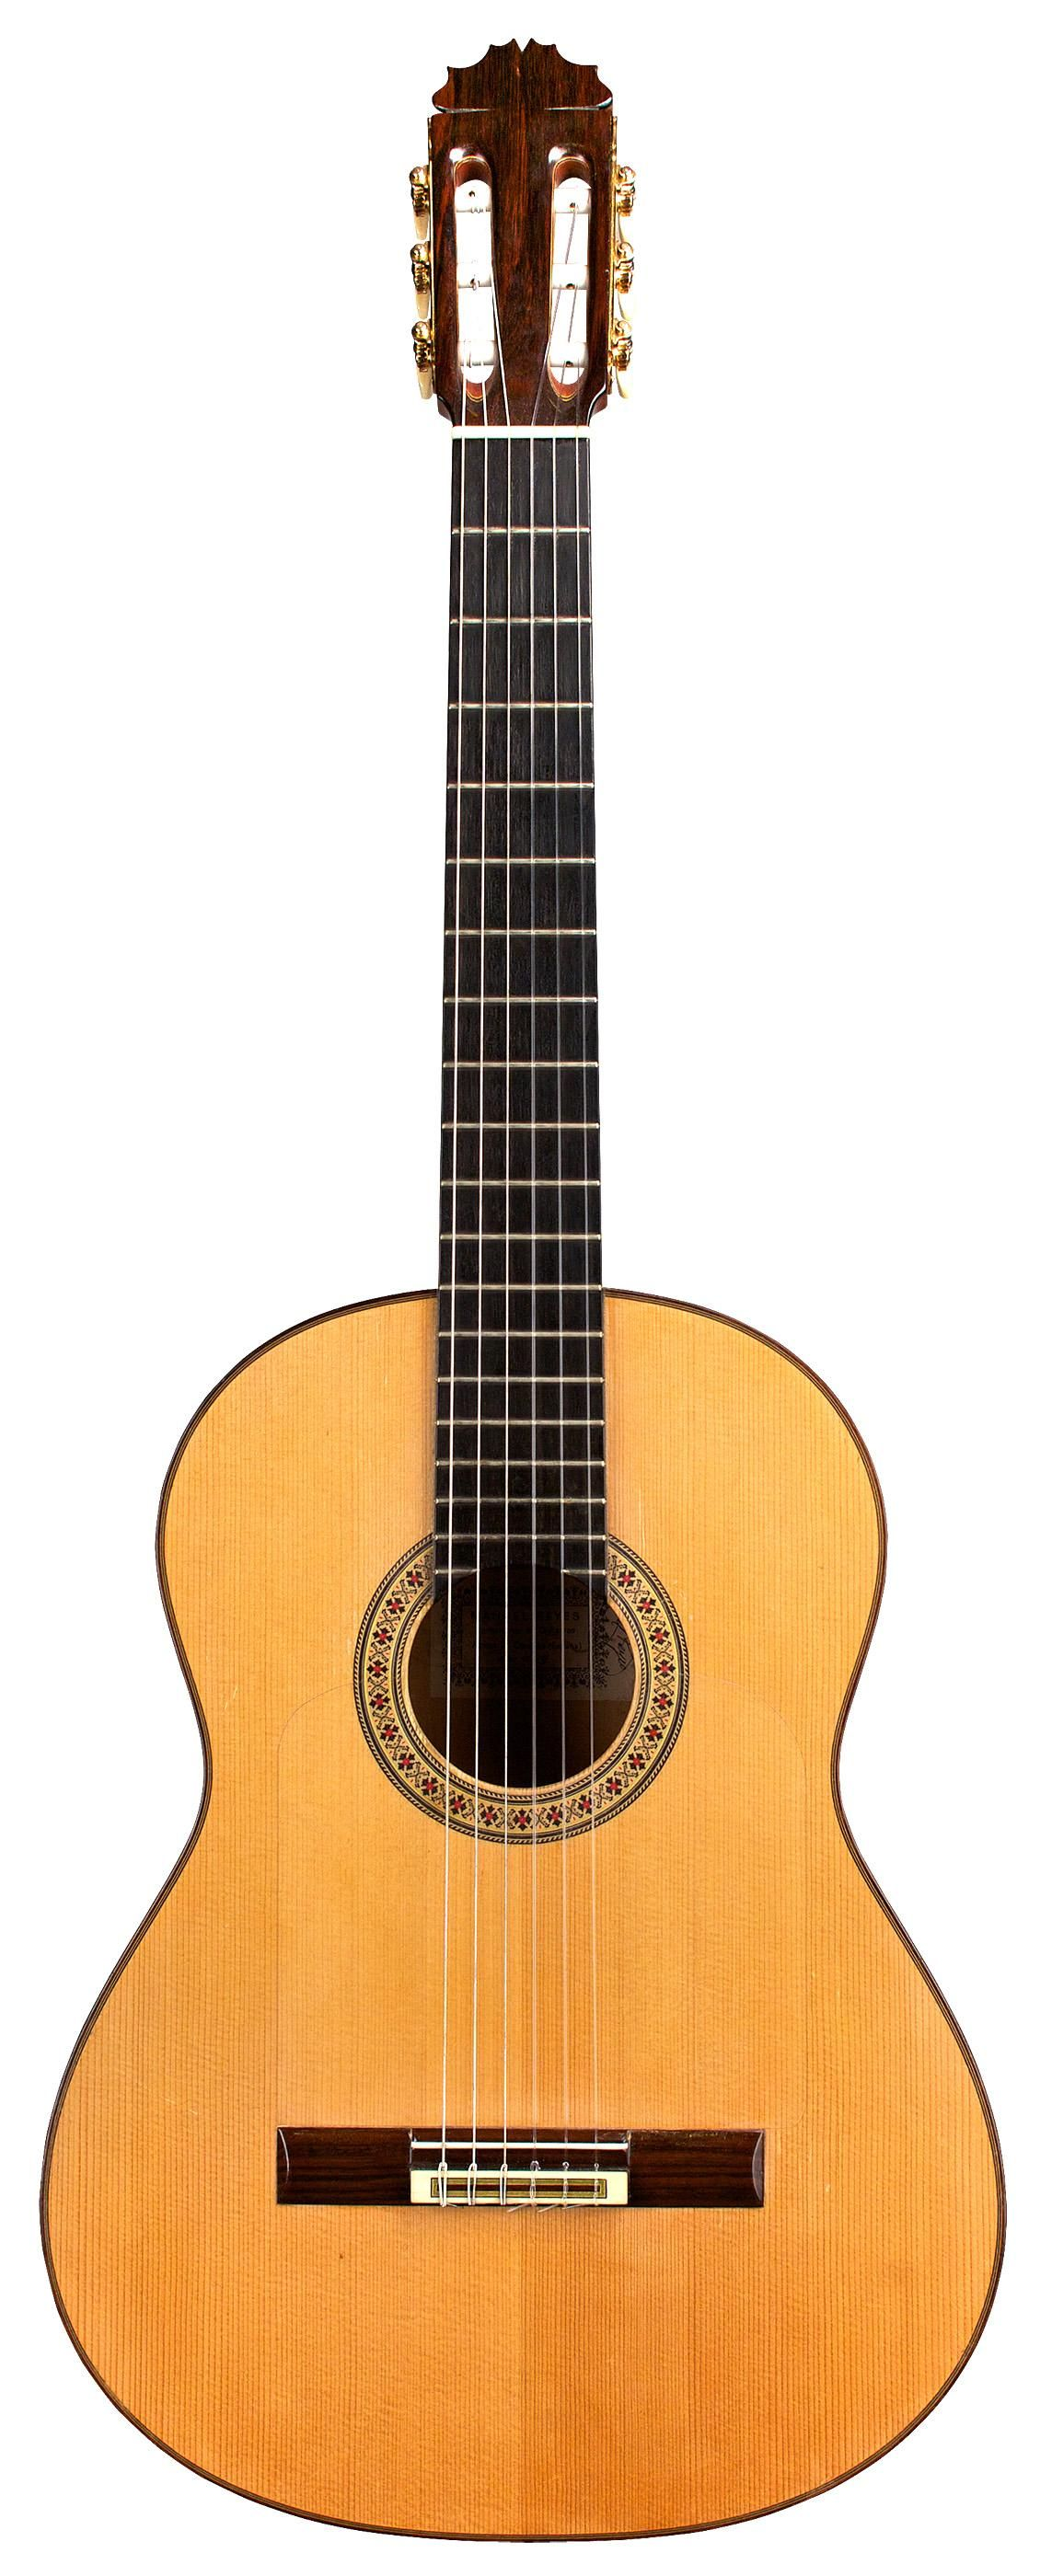 Guitar Salon International Fine Classical Guitars and Flamenco Guitars Manuel Reyes SP CY